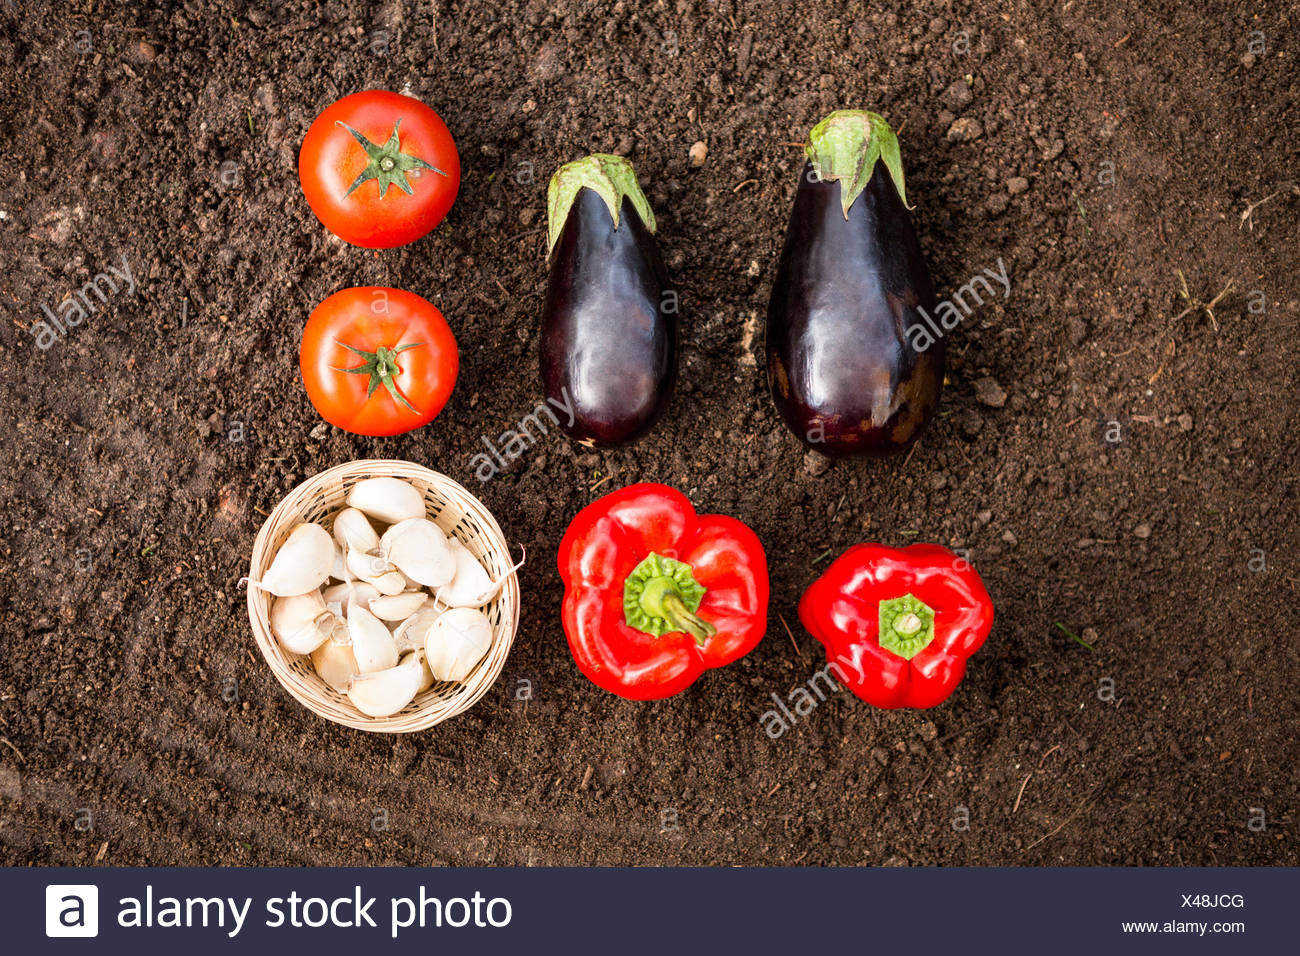 Overhead view of vegetables on dirt at garden - Stock Image